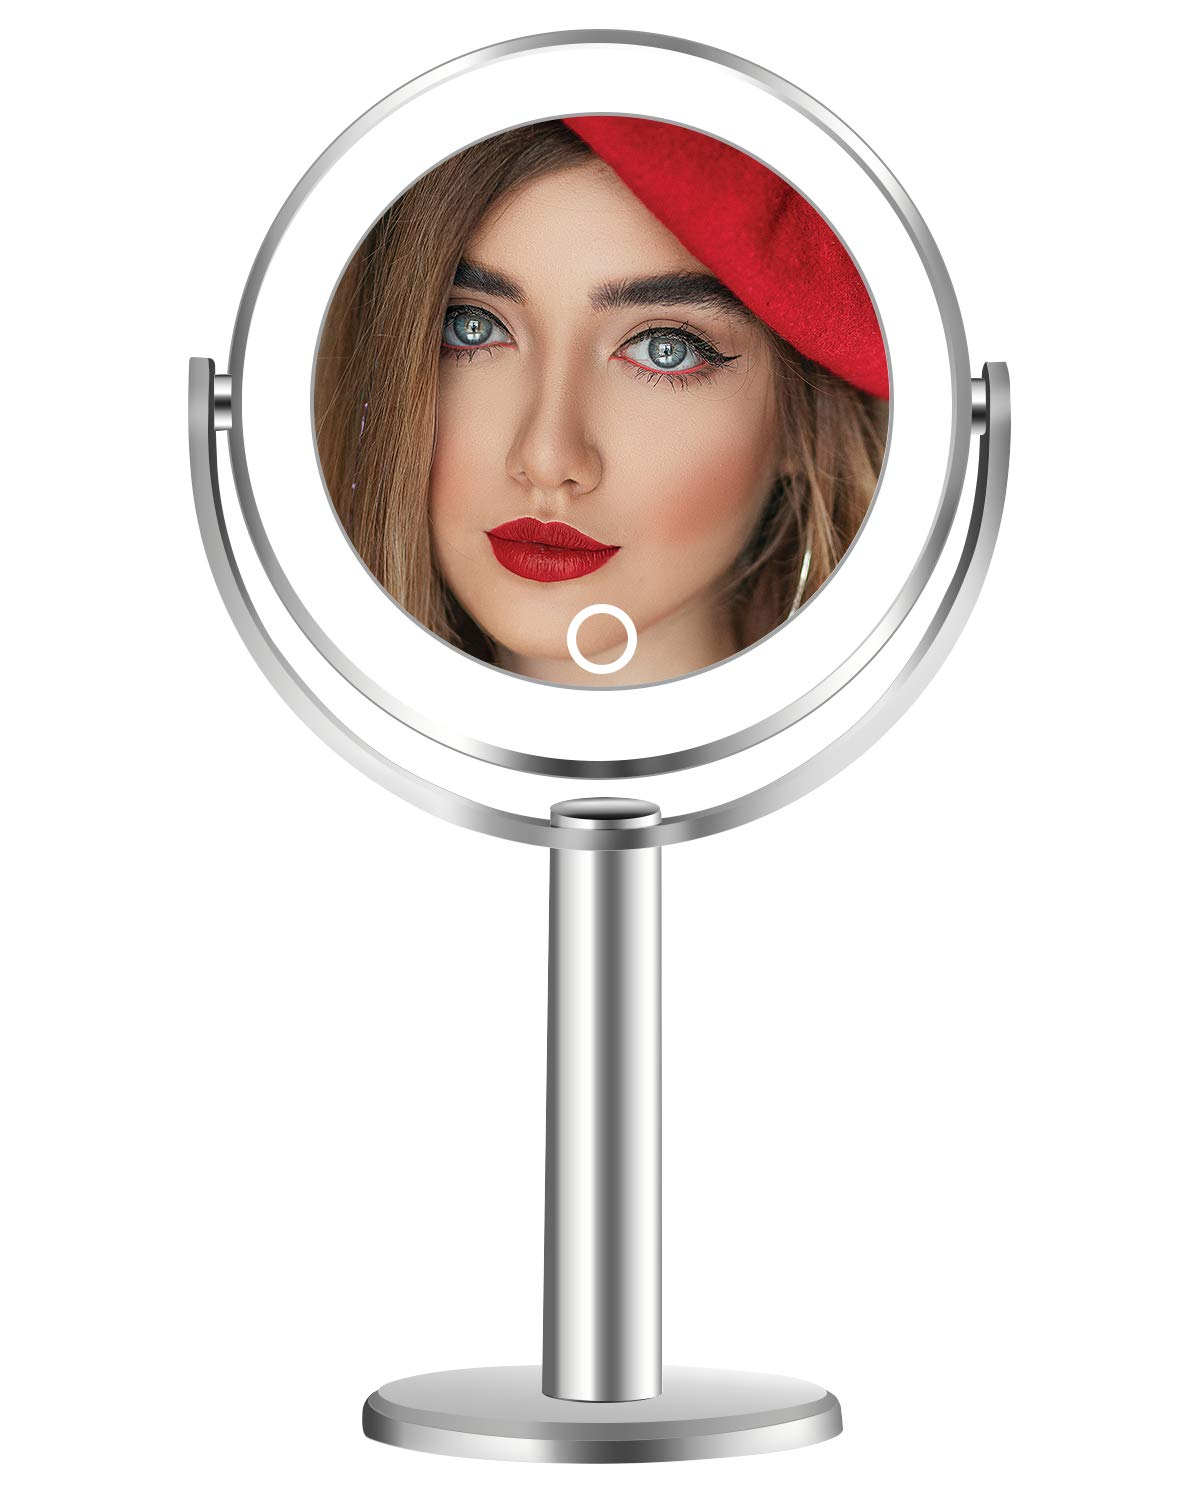 Vanity Makeup Mirror with Lights, 1X and 7X Magnifying Round Led Lighted Cosmetic Mirror